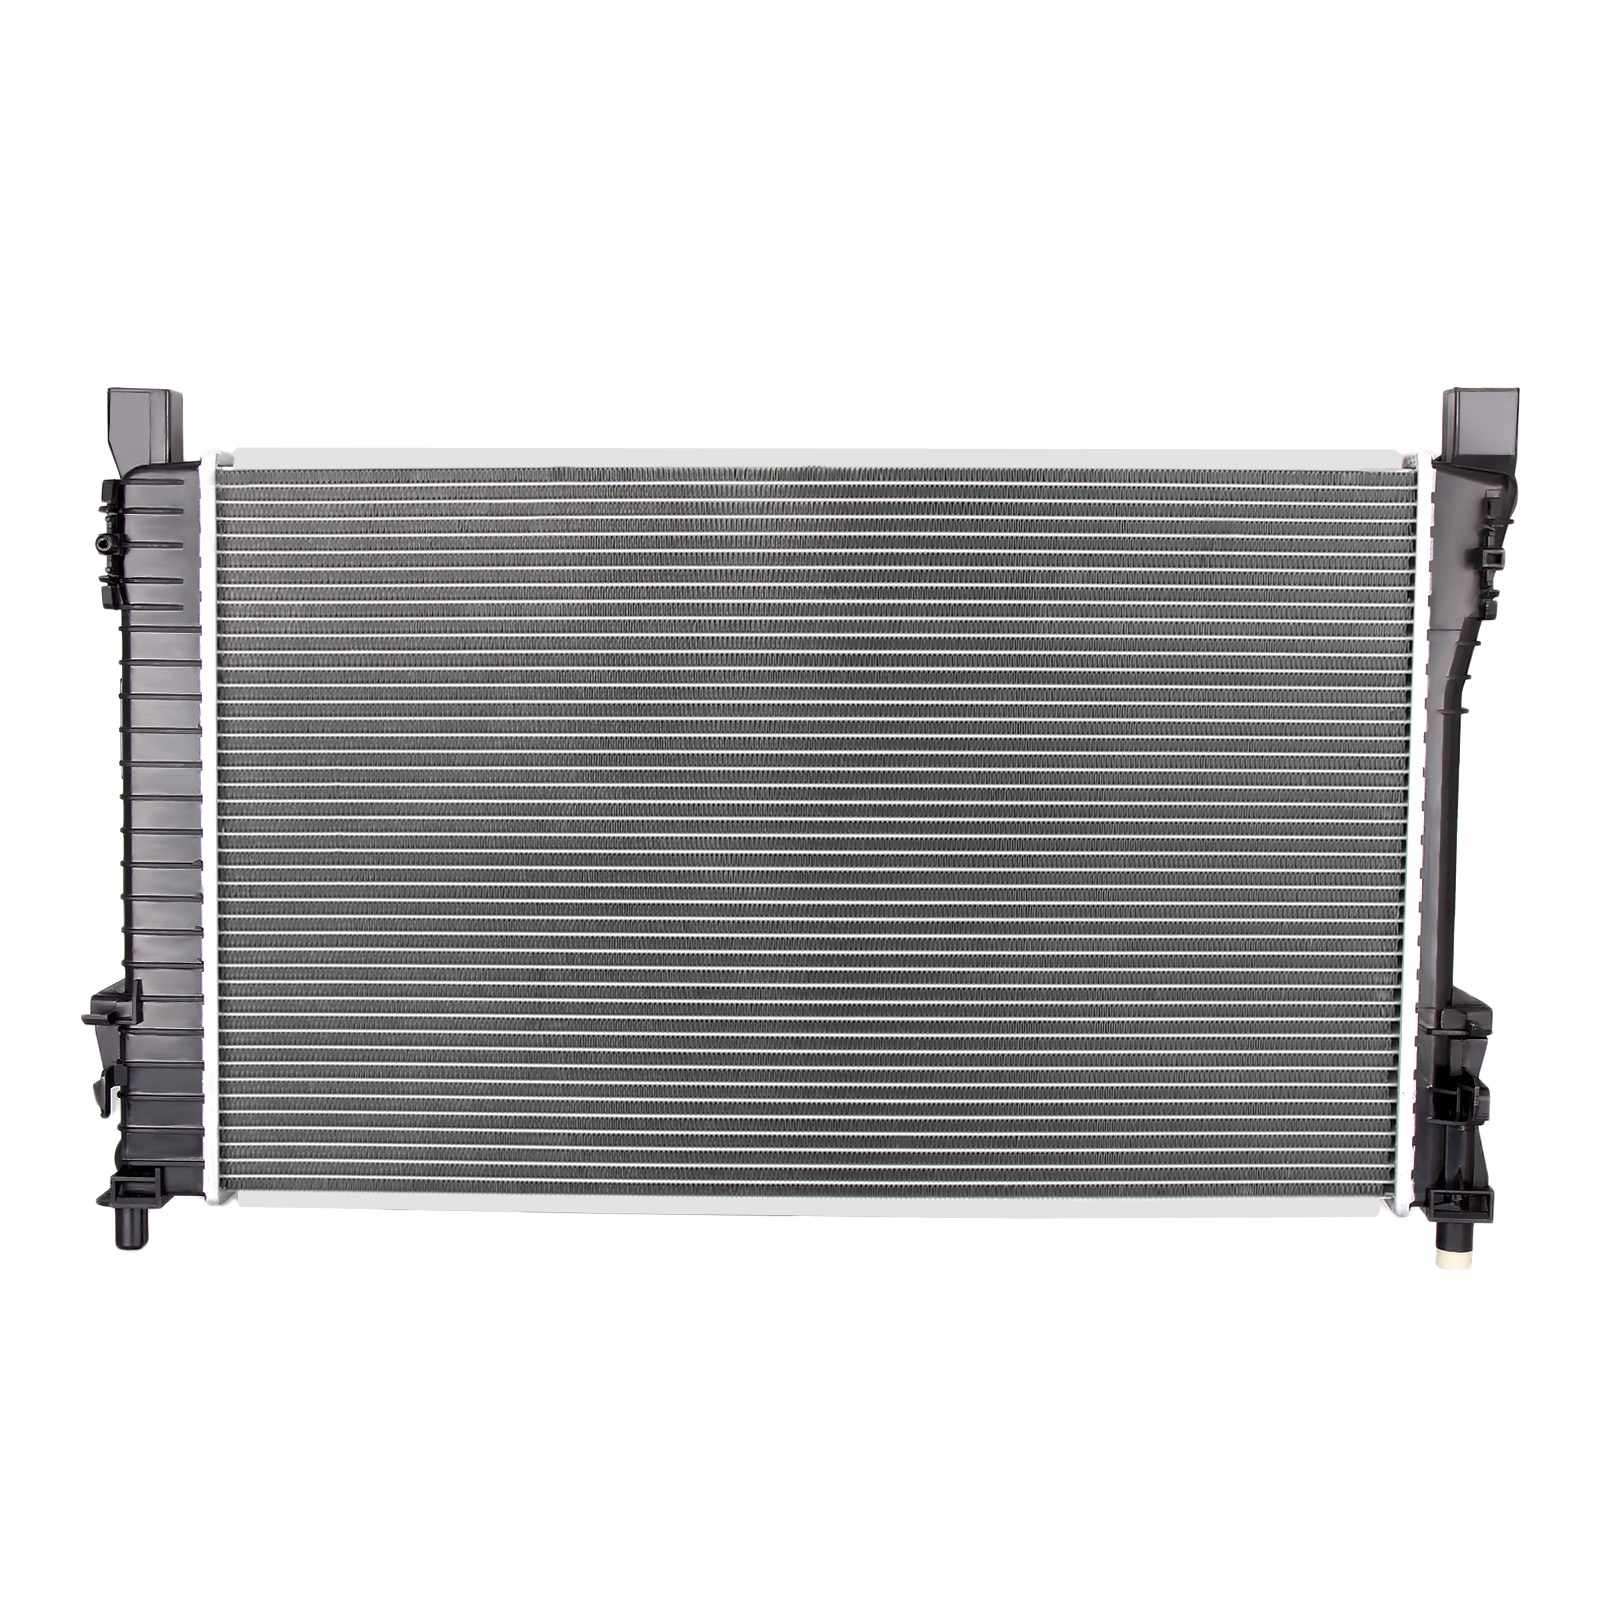 Dromedary Radiator for Mercedes Benz C230 02-07 C240 01-05 C32 C320 1.8 2.3 L4 3.2 AT 2337 MERCEDES BENZ RADIATOR image4